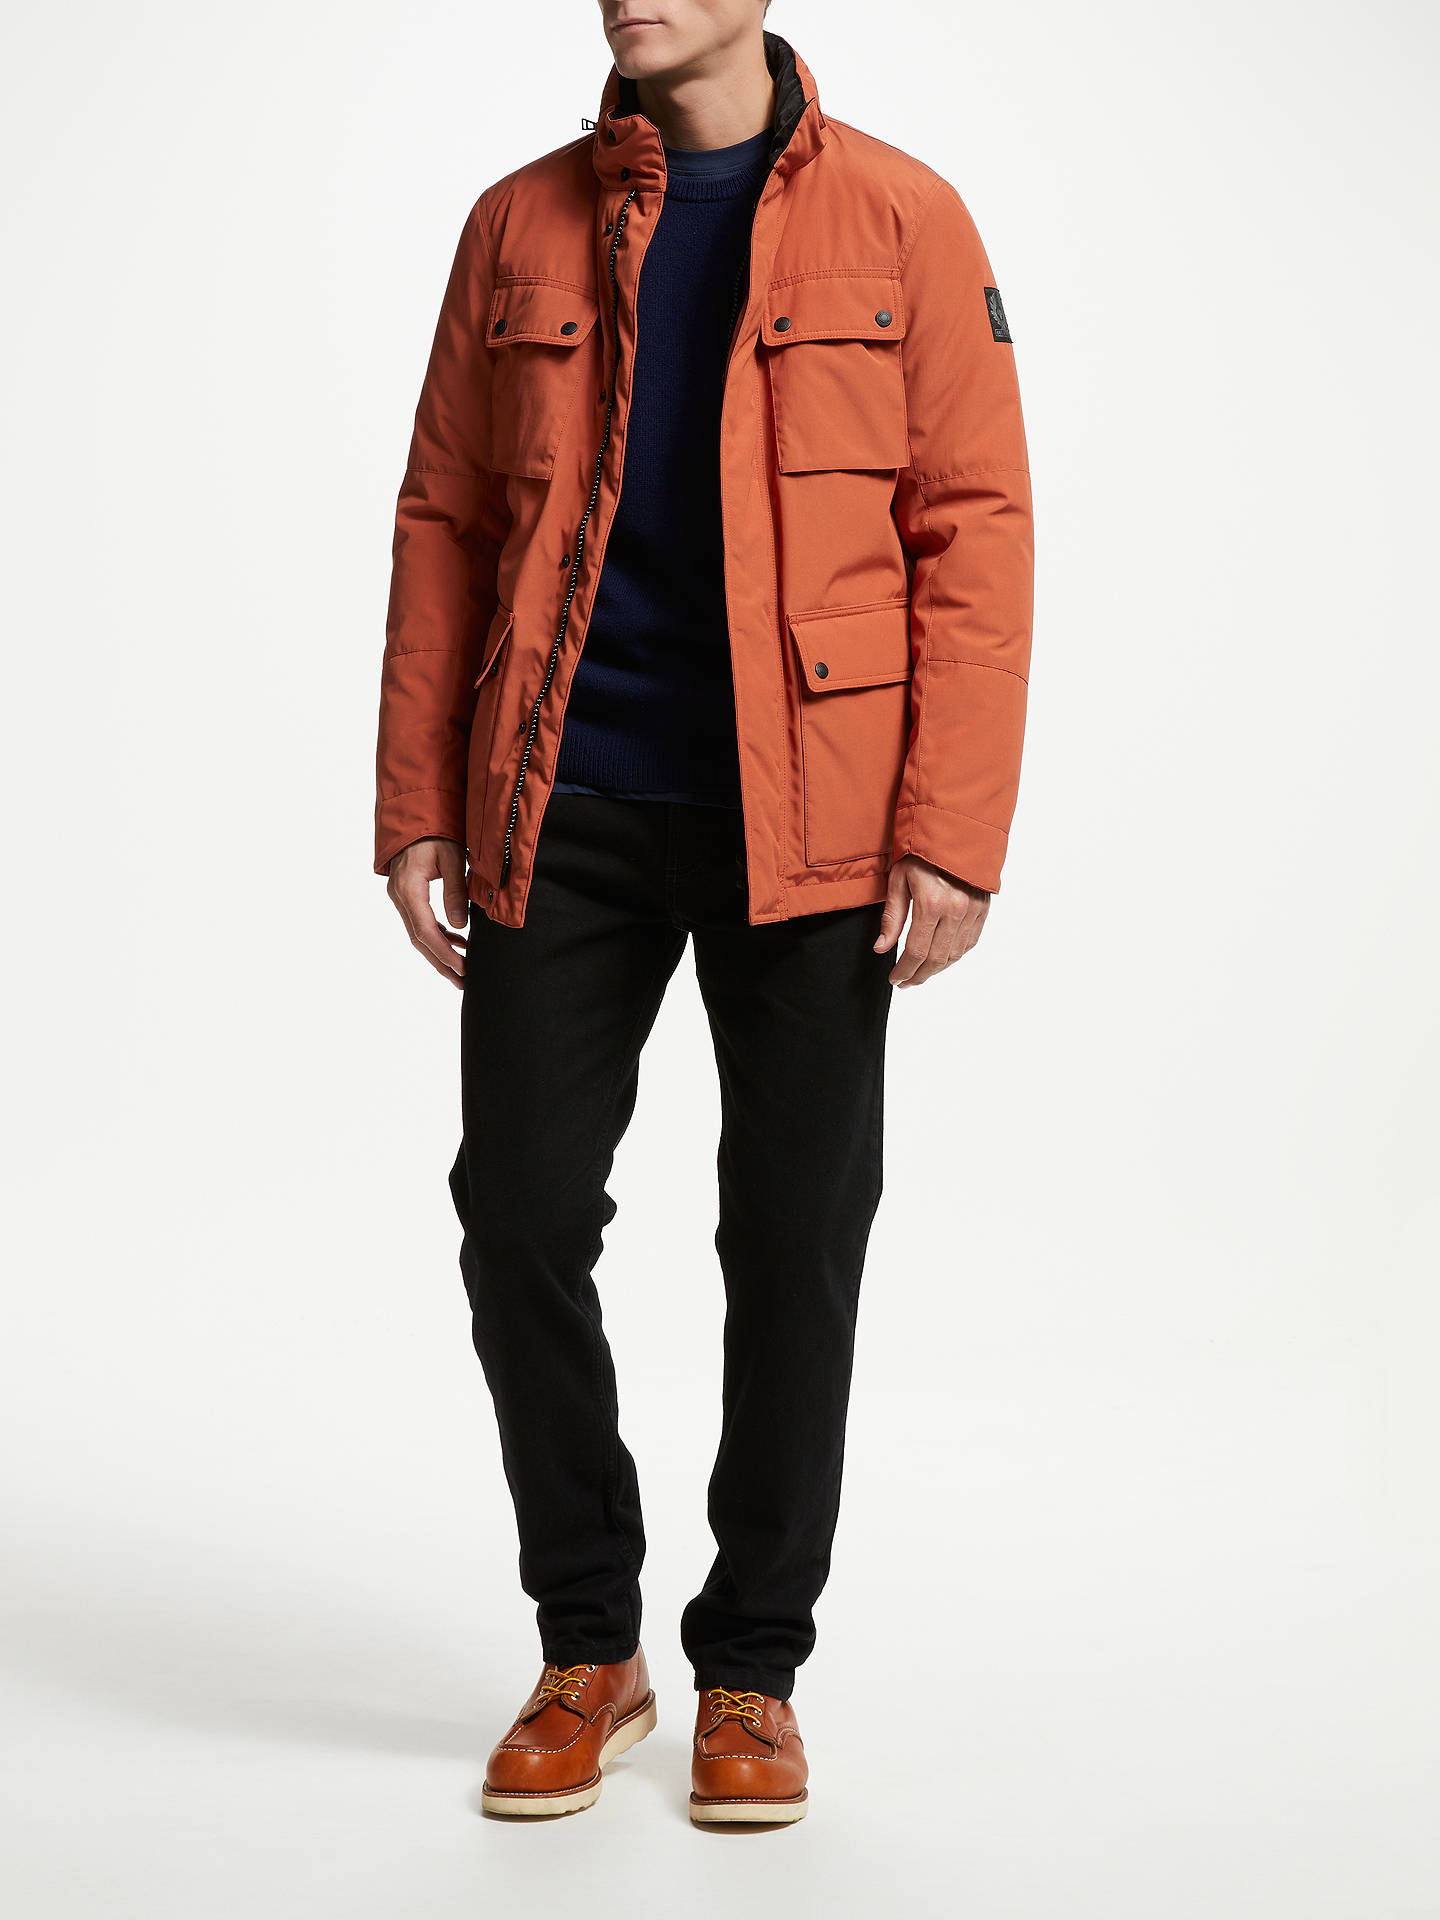 BuyBelstaff Explorer Jacket, Bright Tamarind, 48 Online at johnlewis.com